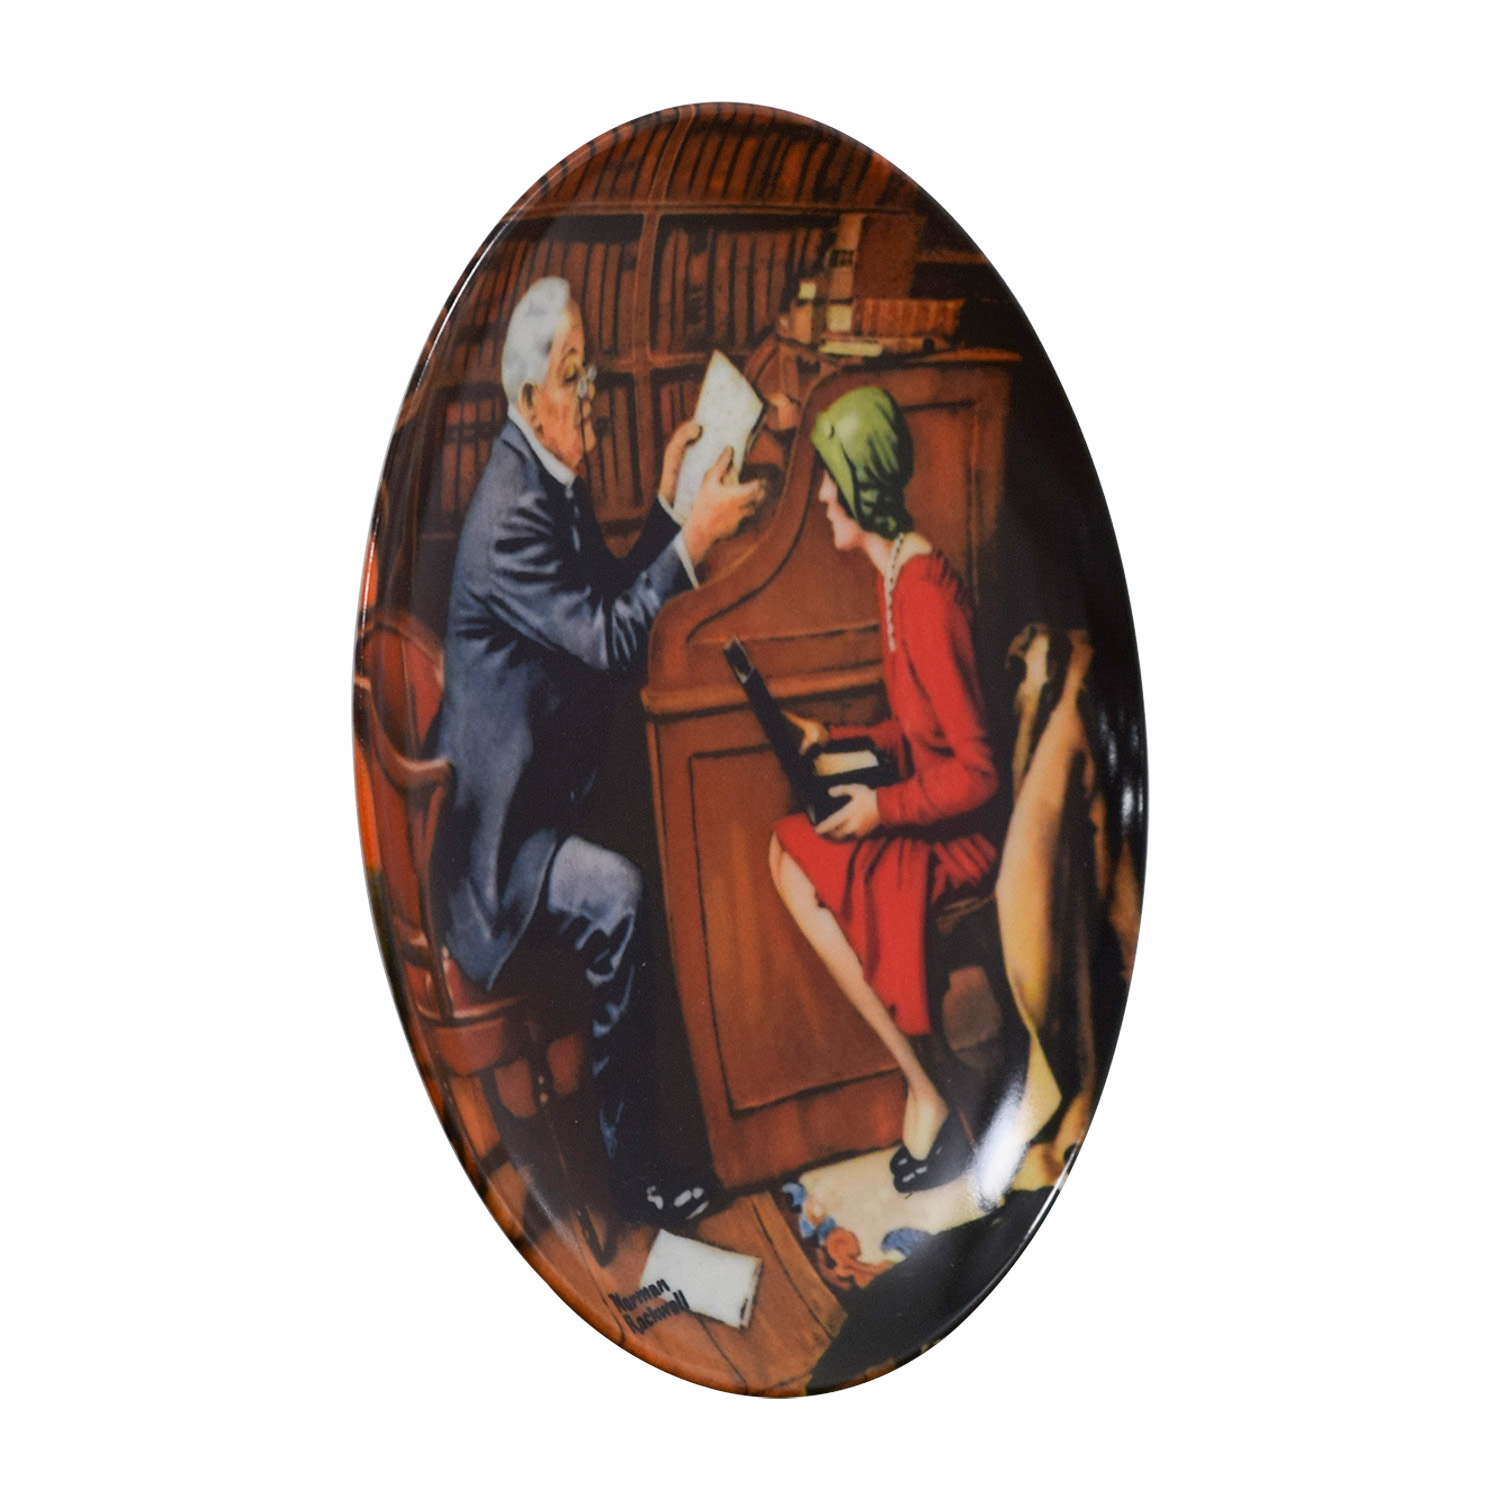 Edward M. Knowles Edward M. Knowles Norman Rockwell Plate The Professor Wall Art